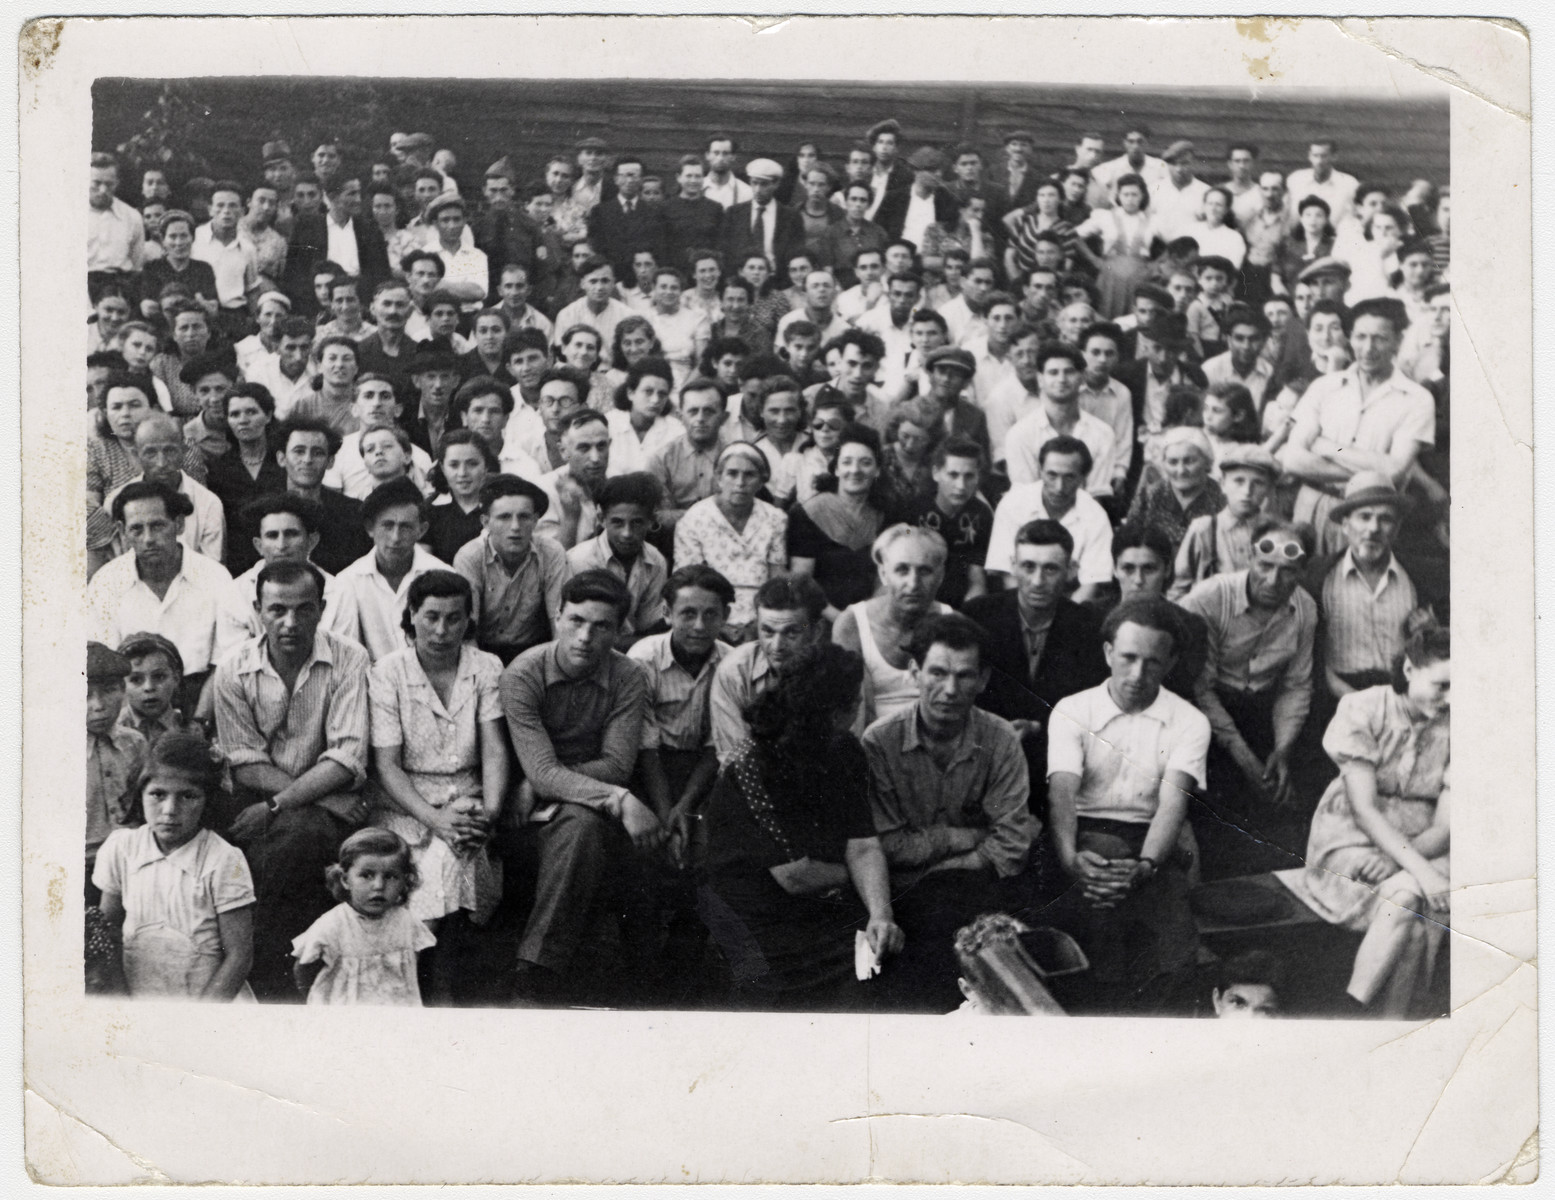 Jewish displaced persons attend a Zionist rally in the Ziegenhain displaced person's camp.